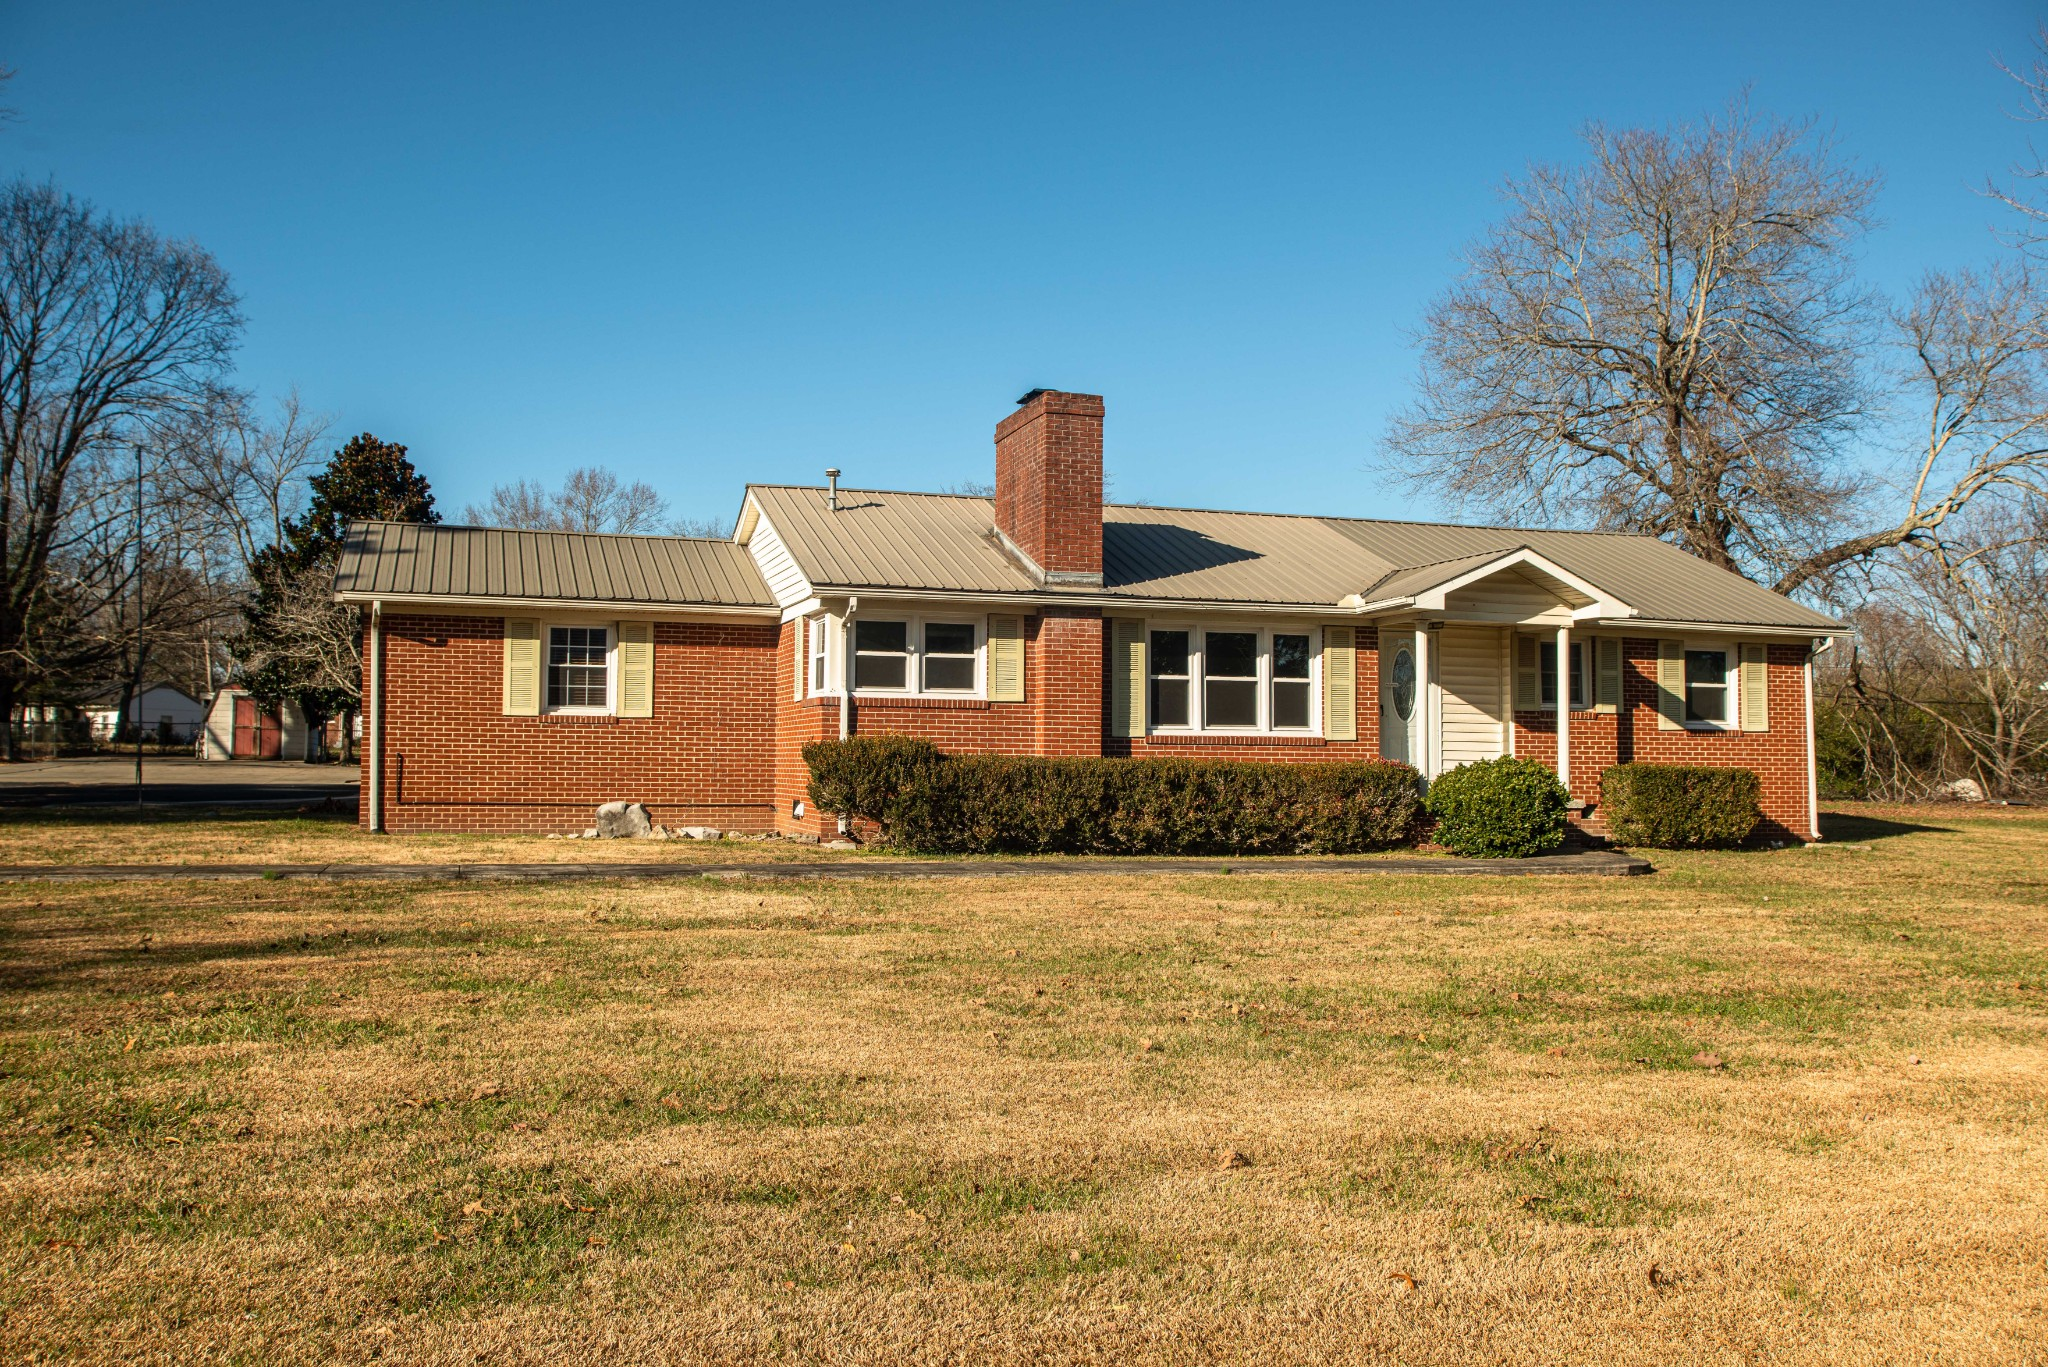 1204 Fawn St, Tullahoma, TN 37388 - Tullahoma, TN real estate listing